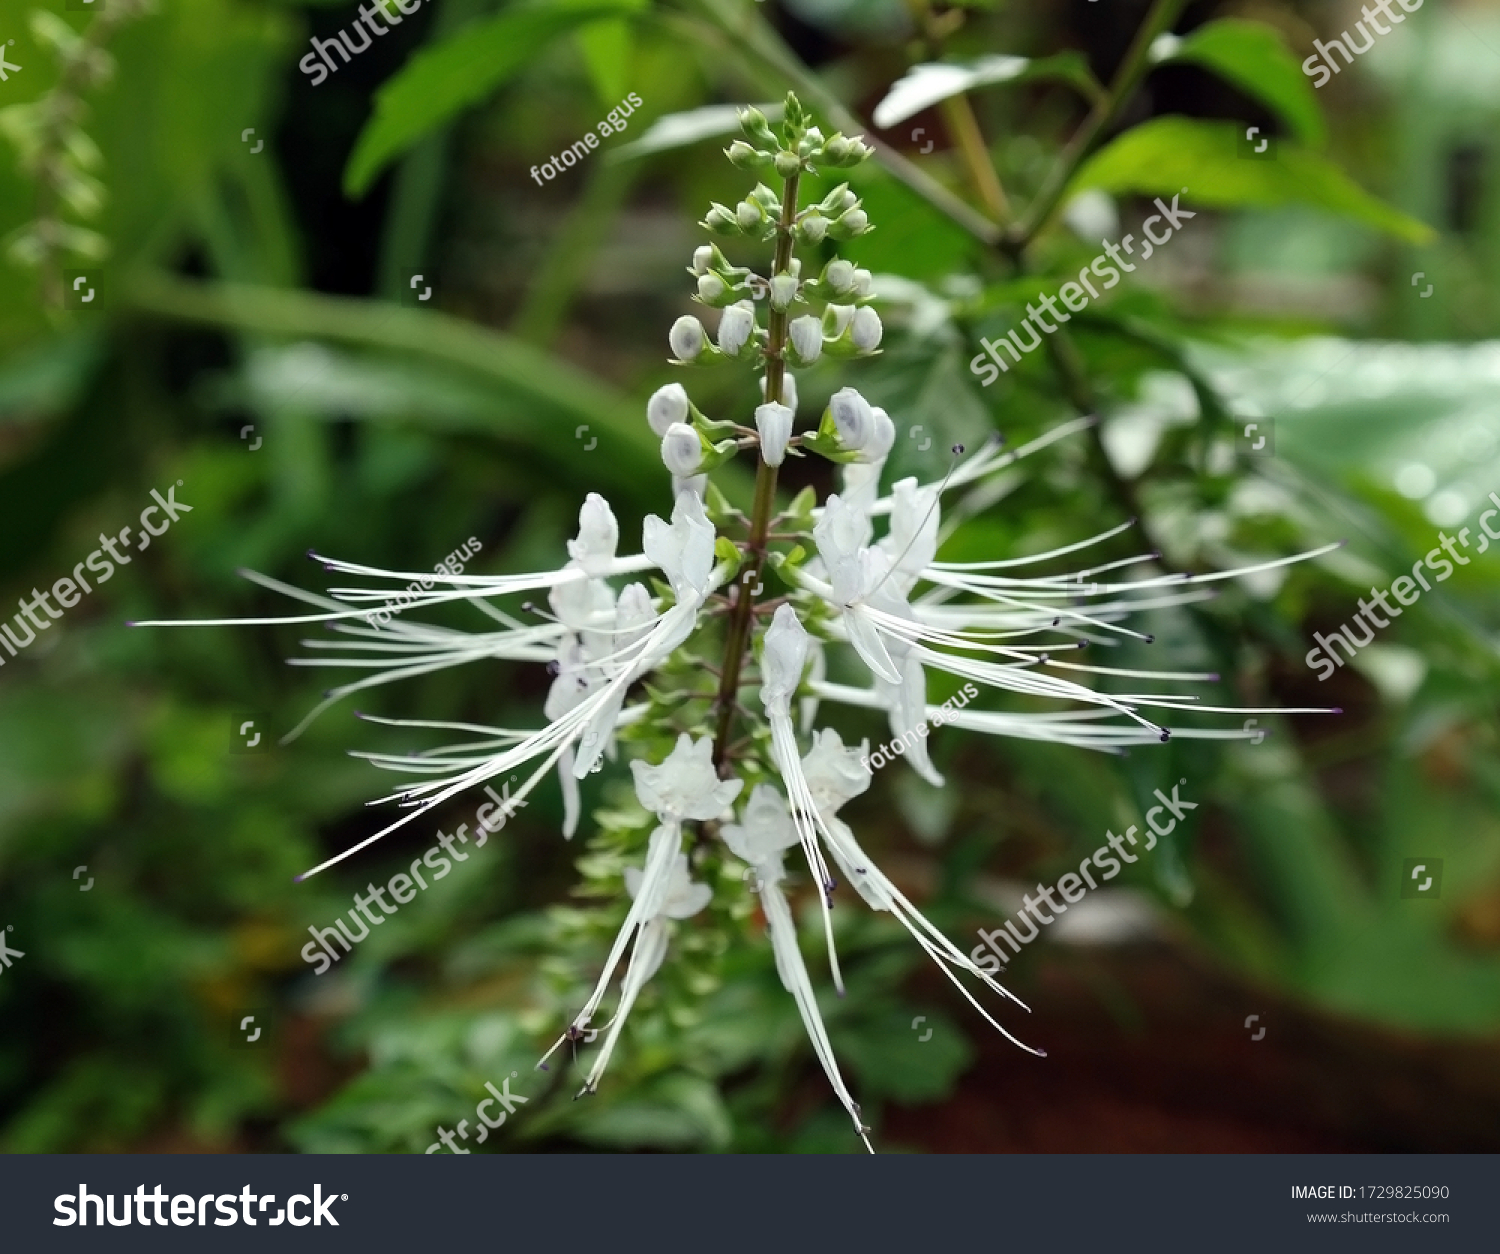 Orthosiphon aristatus or cat whiskers, including plants from the family Lamiaceae. This plant is one of the original Indonesian medicinal plants which is believed to be able to treat various diseases.